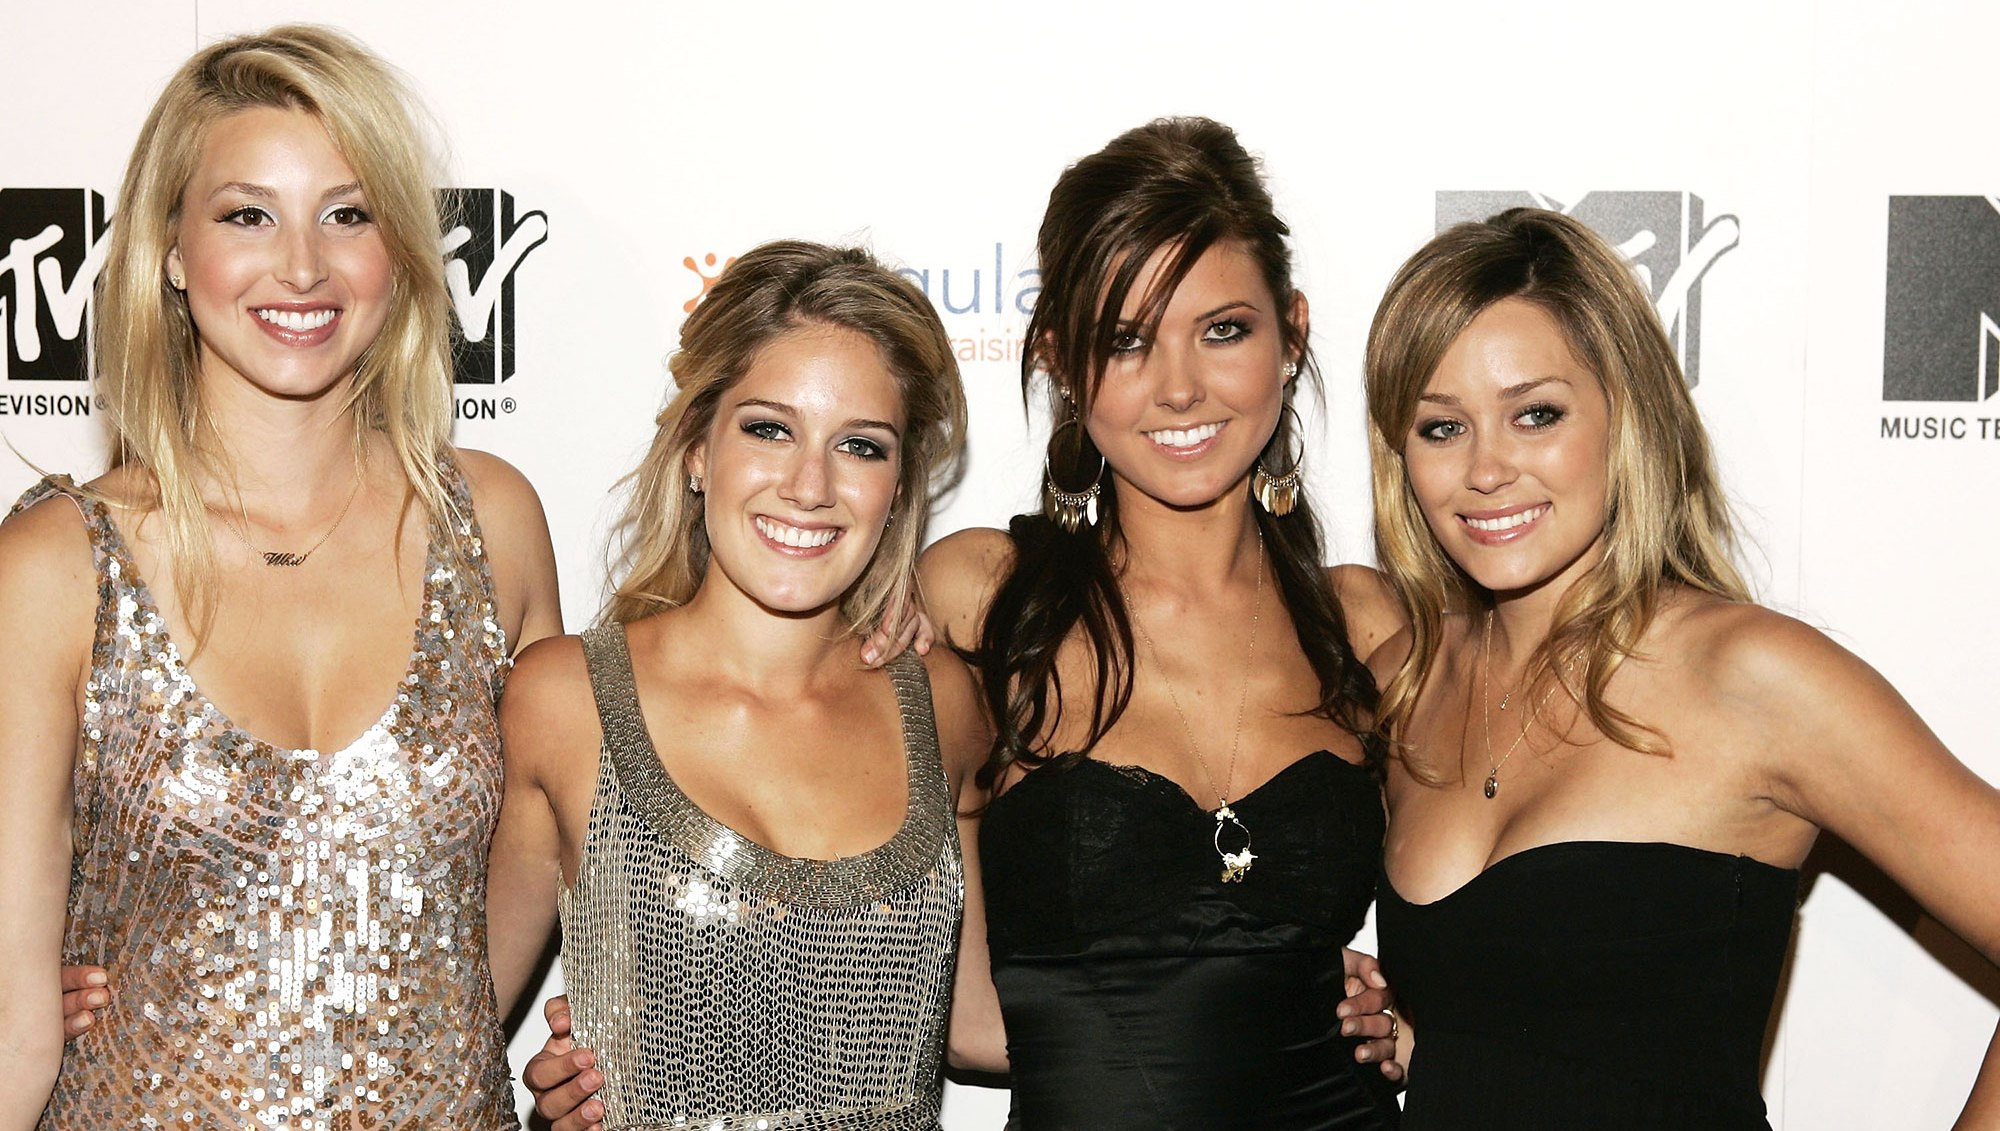 the hills reboot lauren conrad audrina patridge whitney port heidi montag